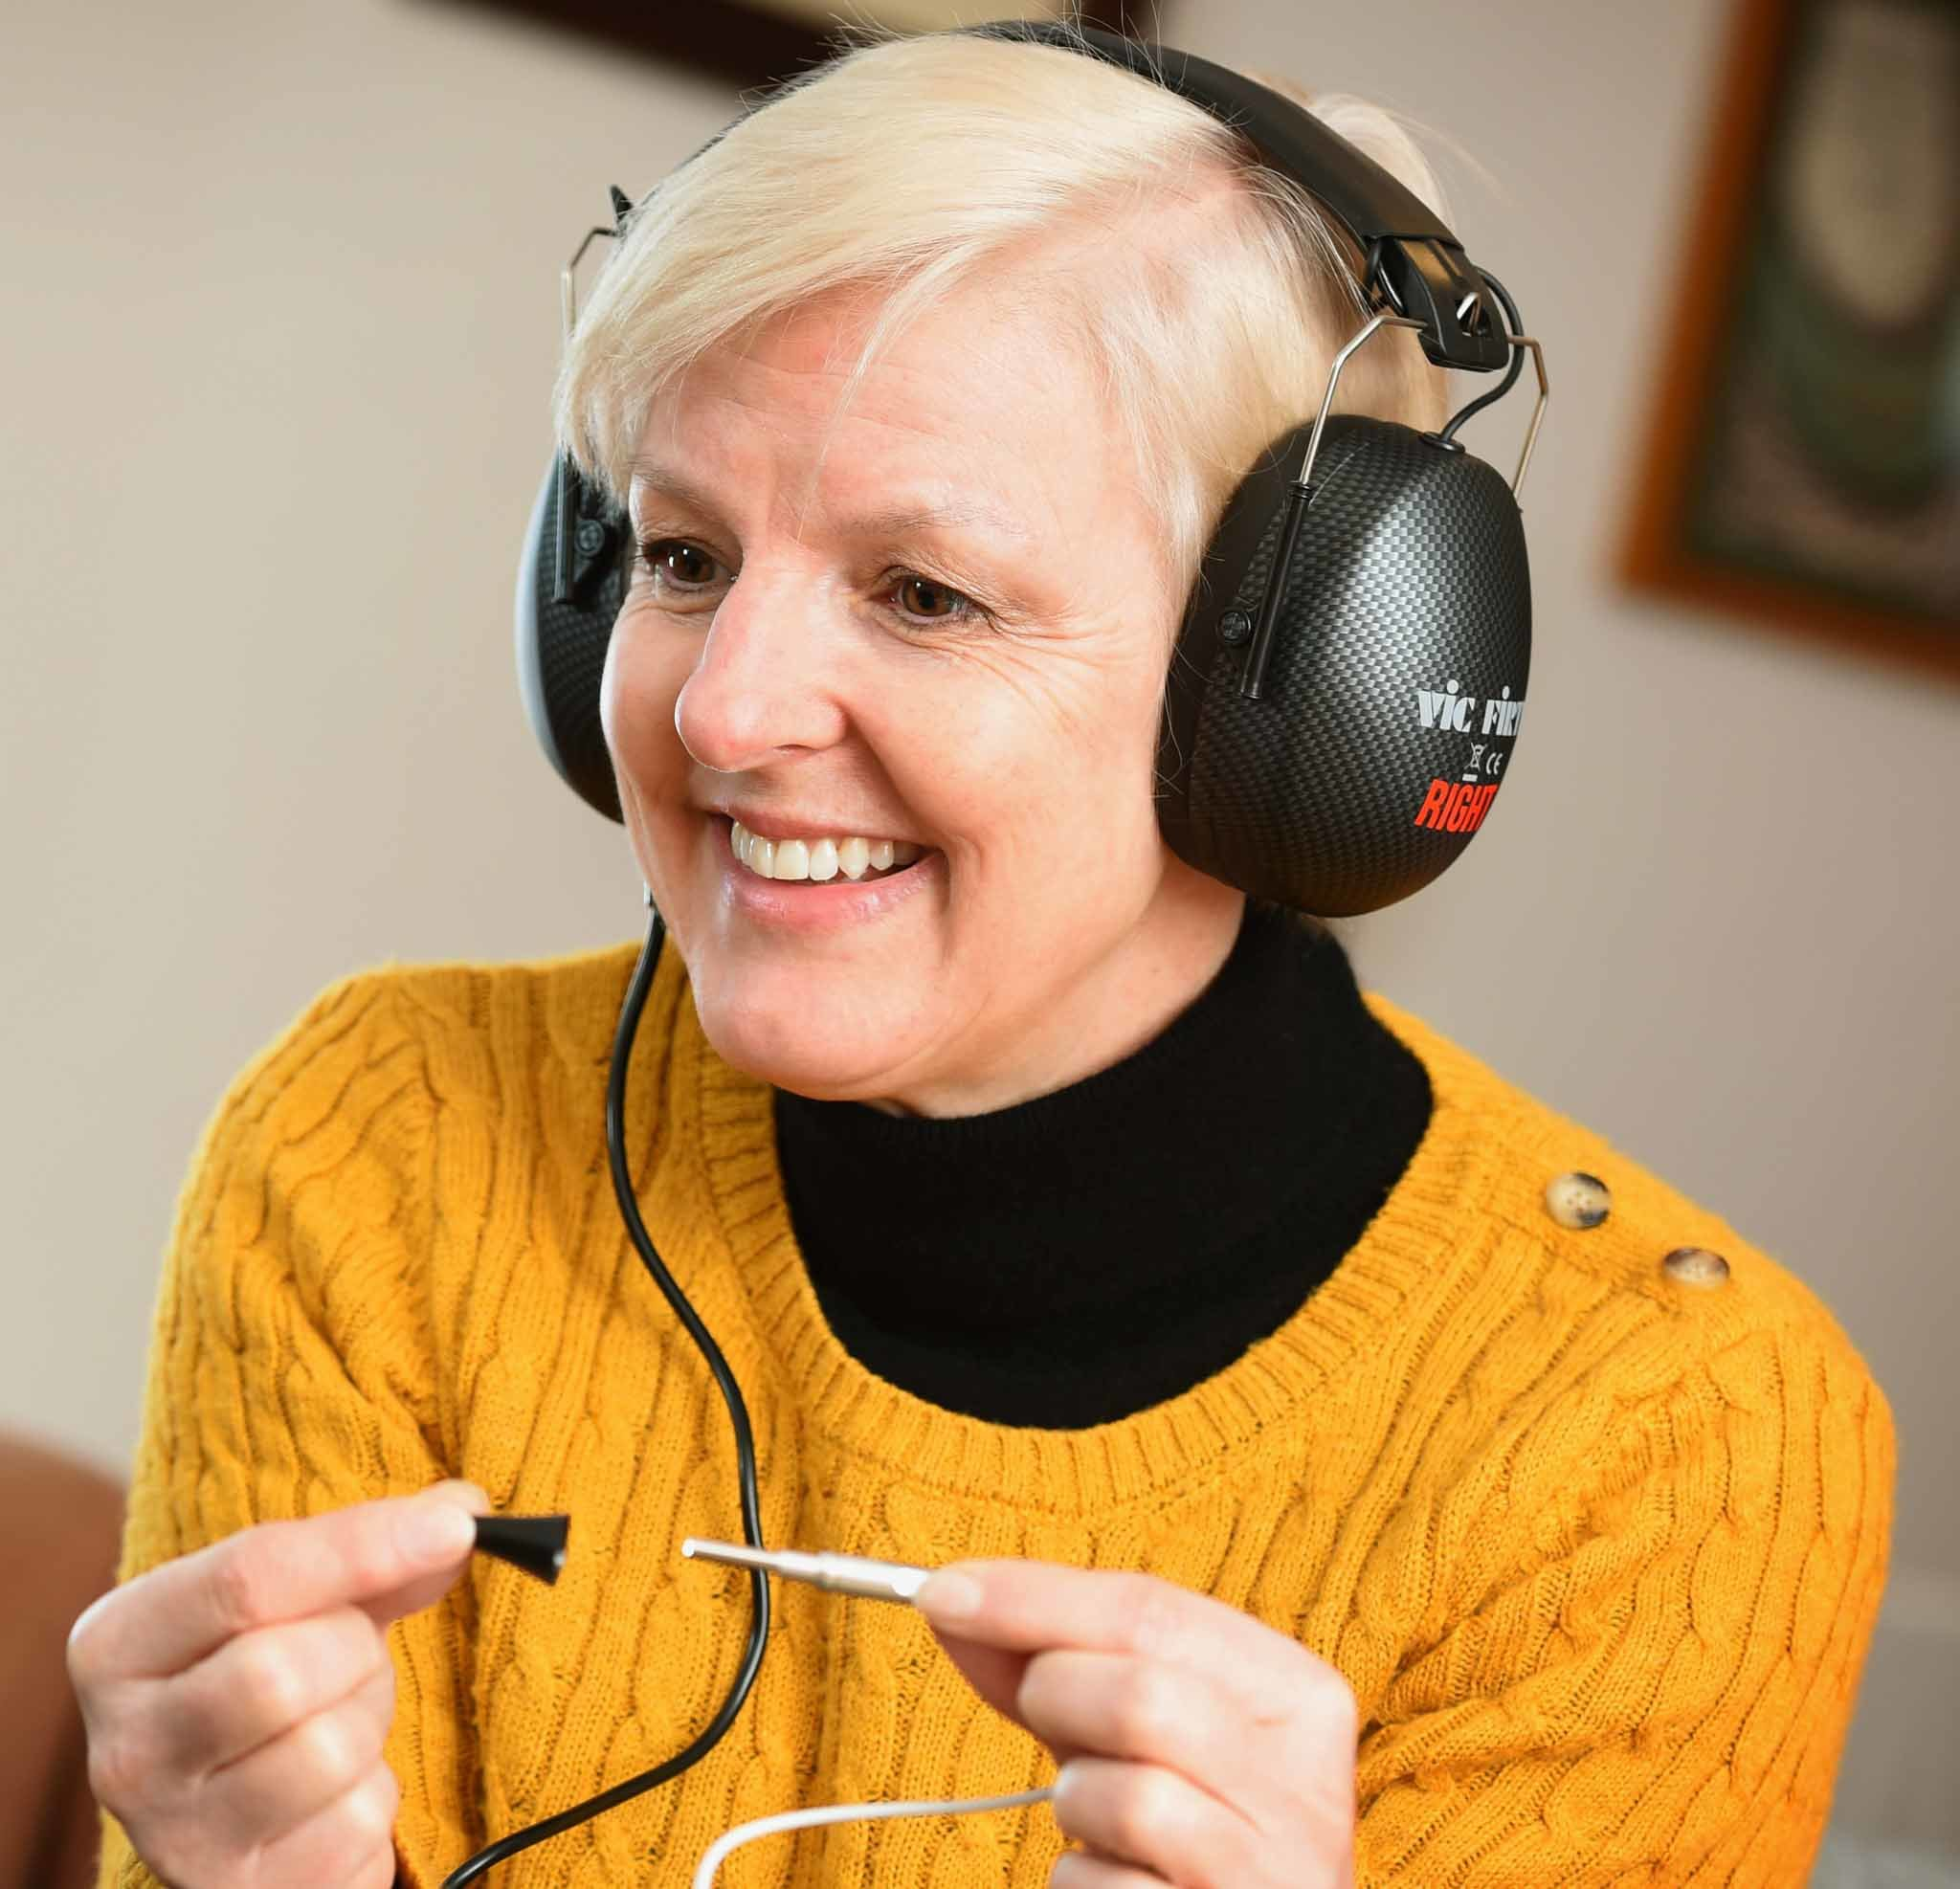 Using the Online Hearing Care home hearing test kit